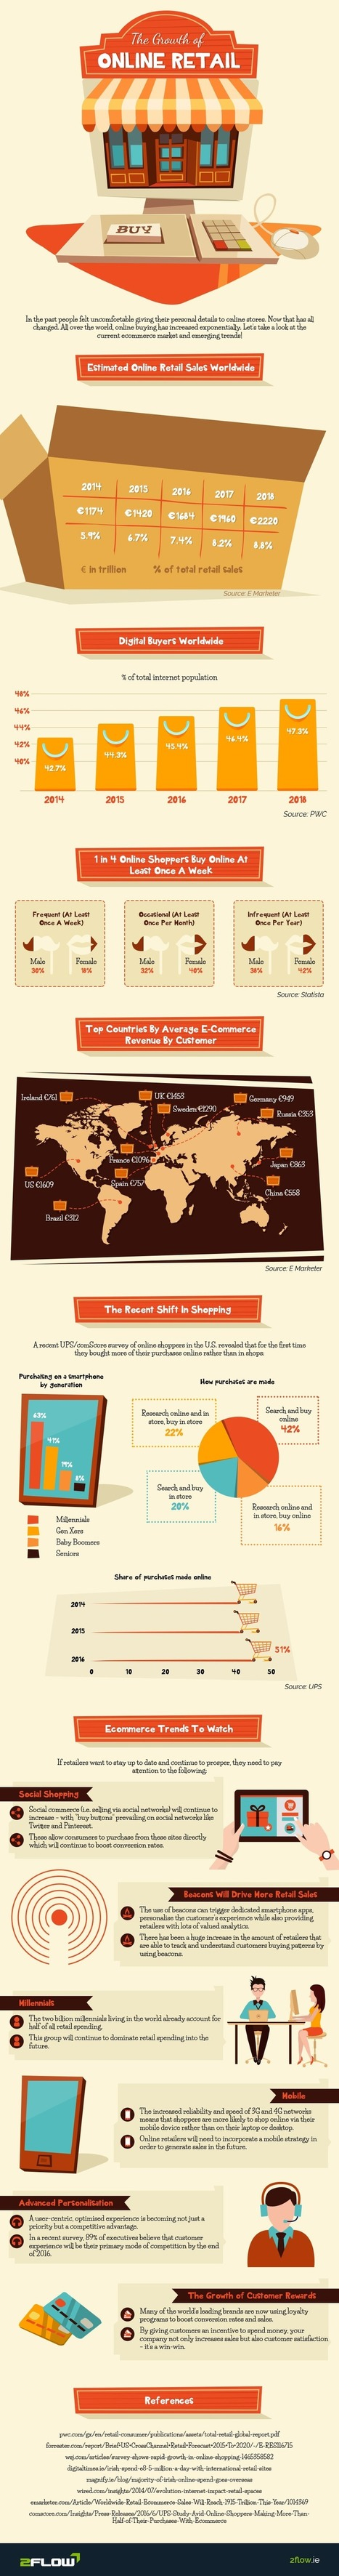 A New Infographic About Online Retail Growth | Social Media and the Internet | Scoop.it